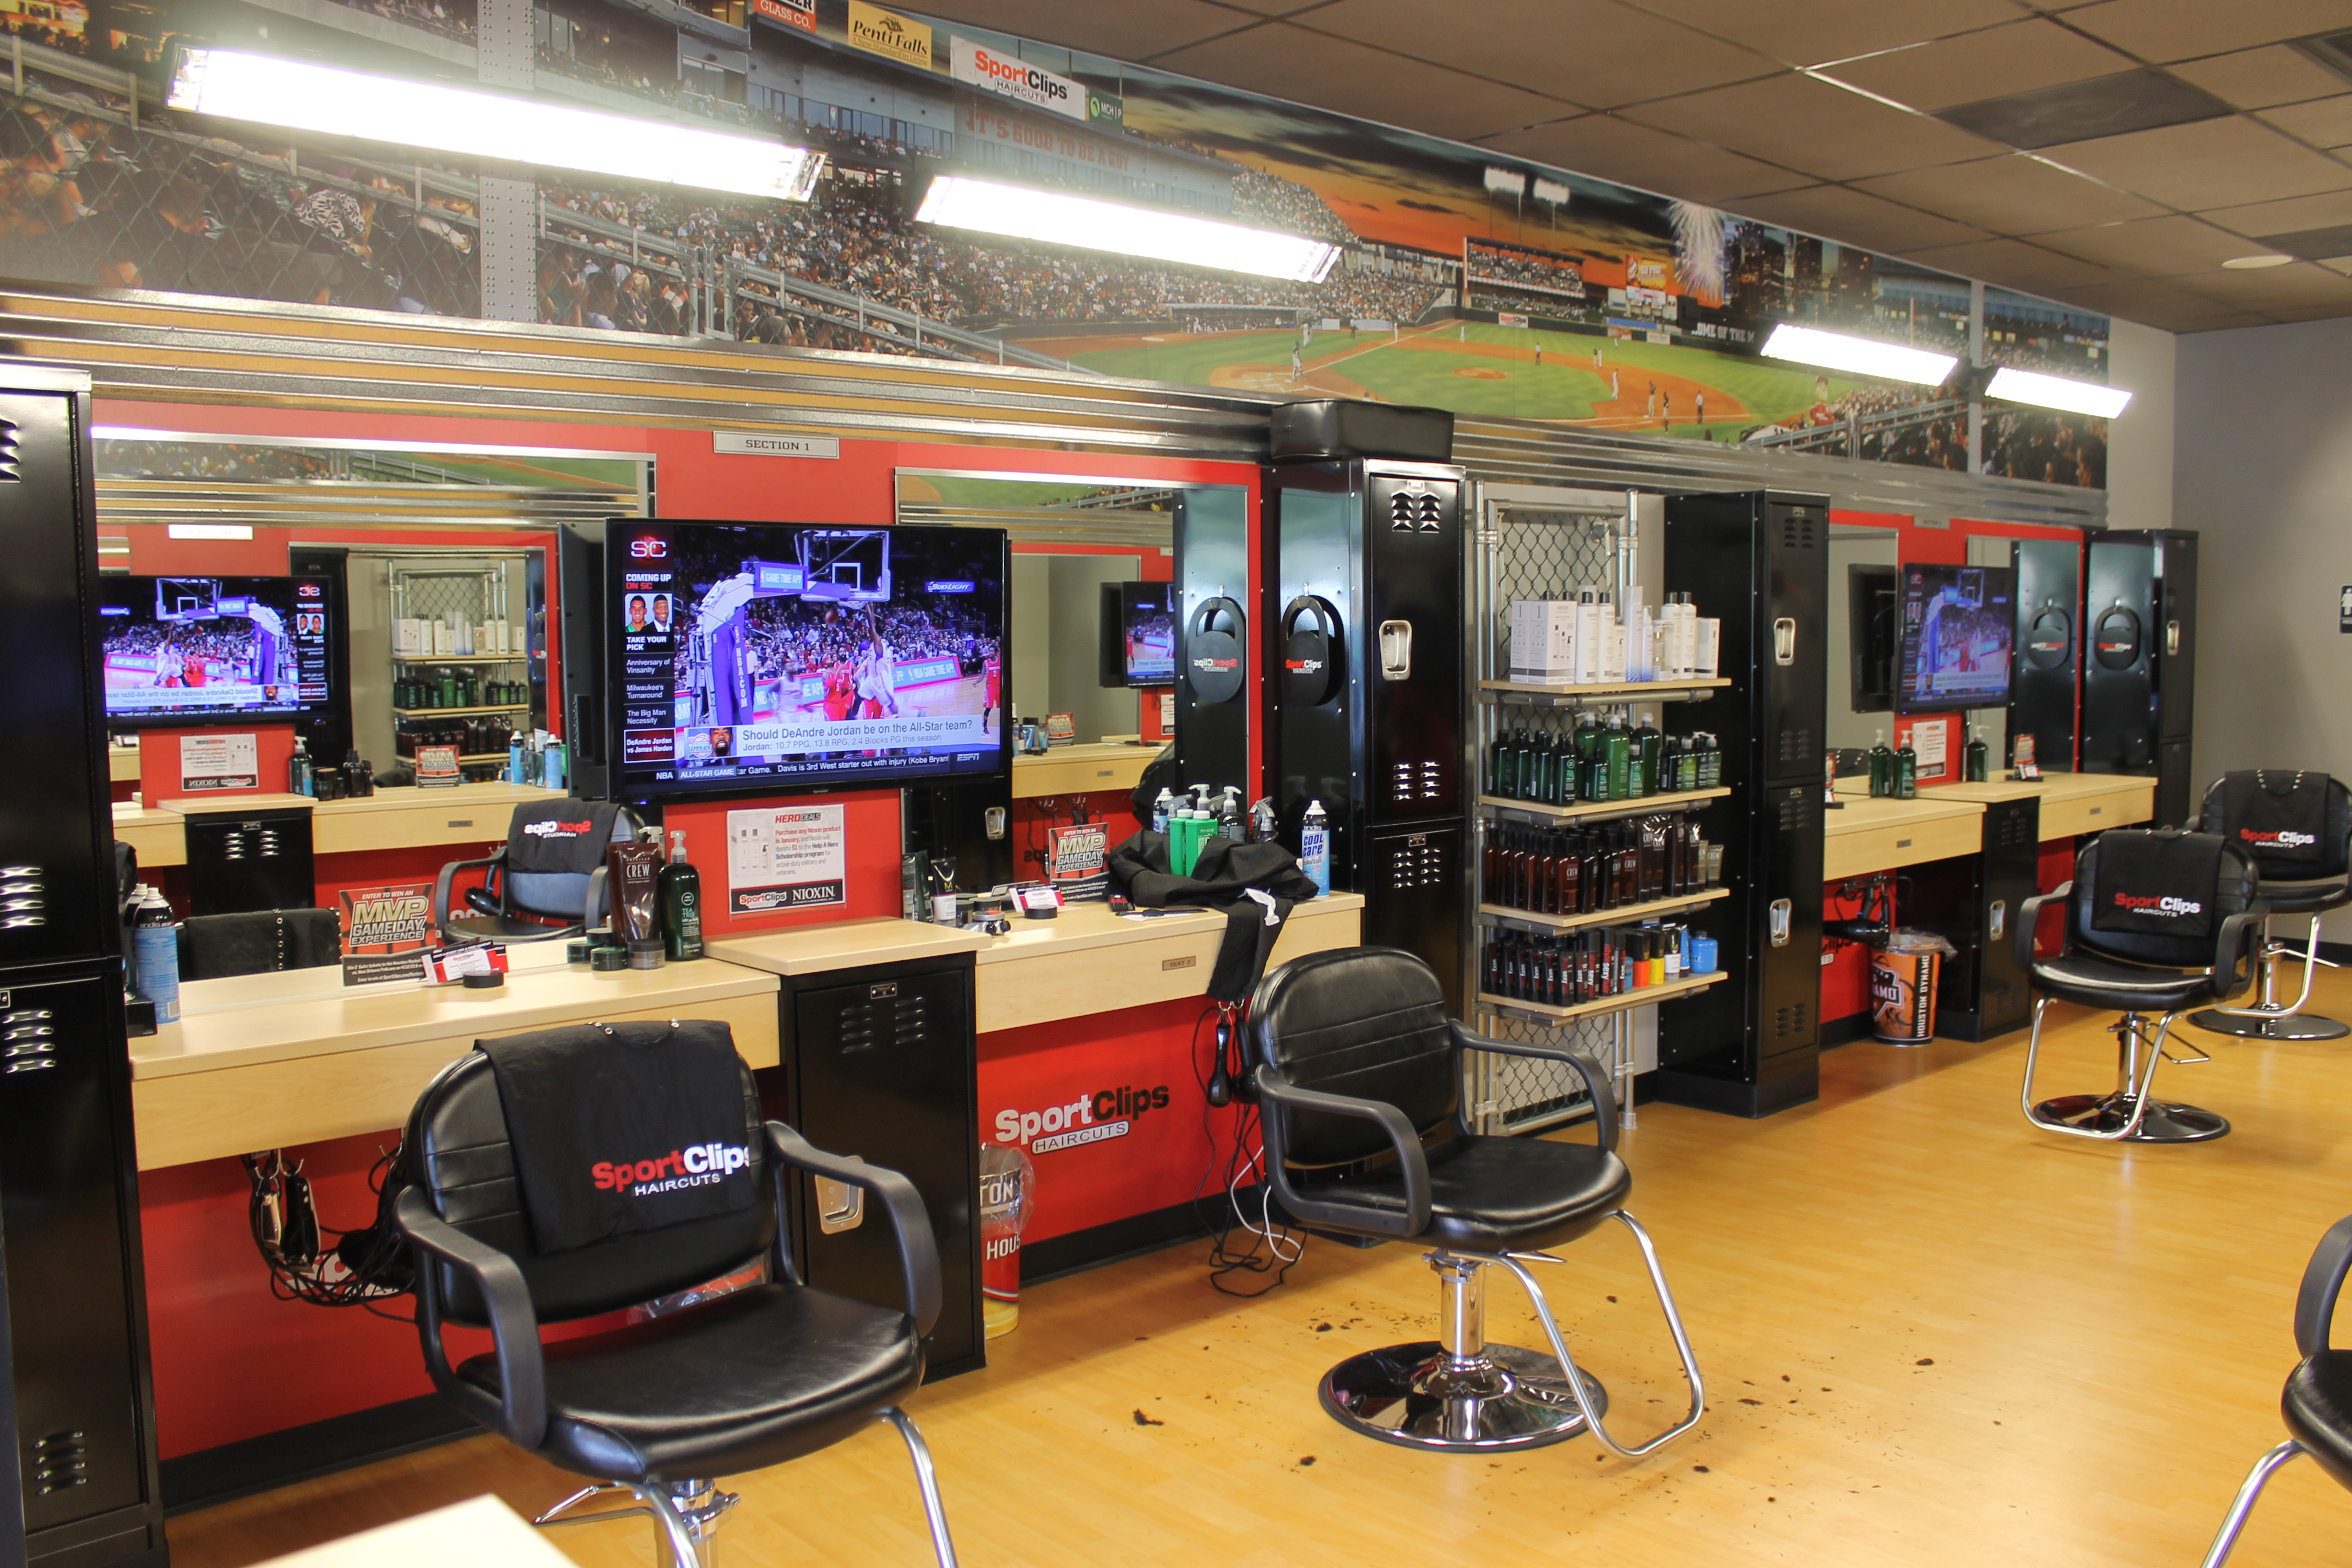 Check in online and visit Sport Clips for the ultimate MVP Haircut Experience! Check in online for your next haircut anytime, anywhere! It's convenient, flexible and saves you time. Stylists who know men's hairstyles – From the classic haircut to cutting edge, we have the expertise and experience to create the perfect look for you.